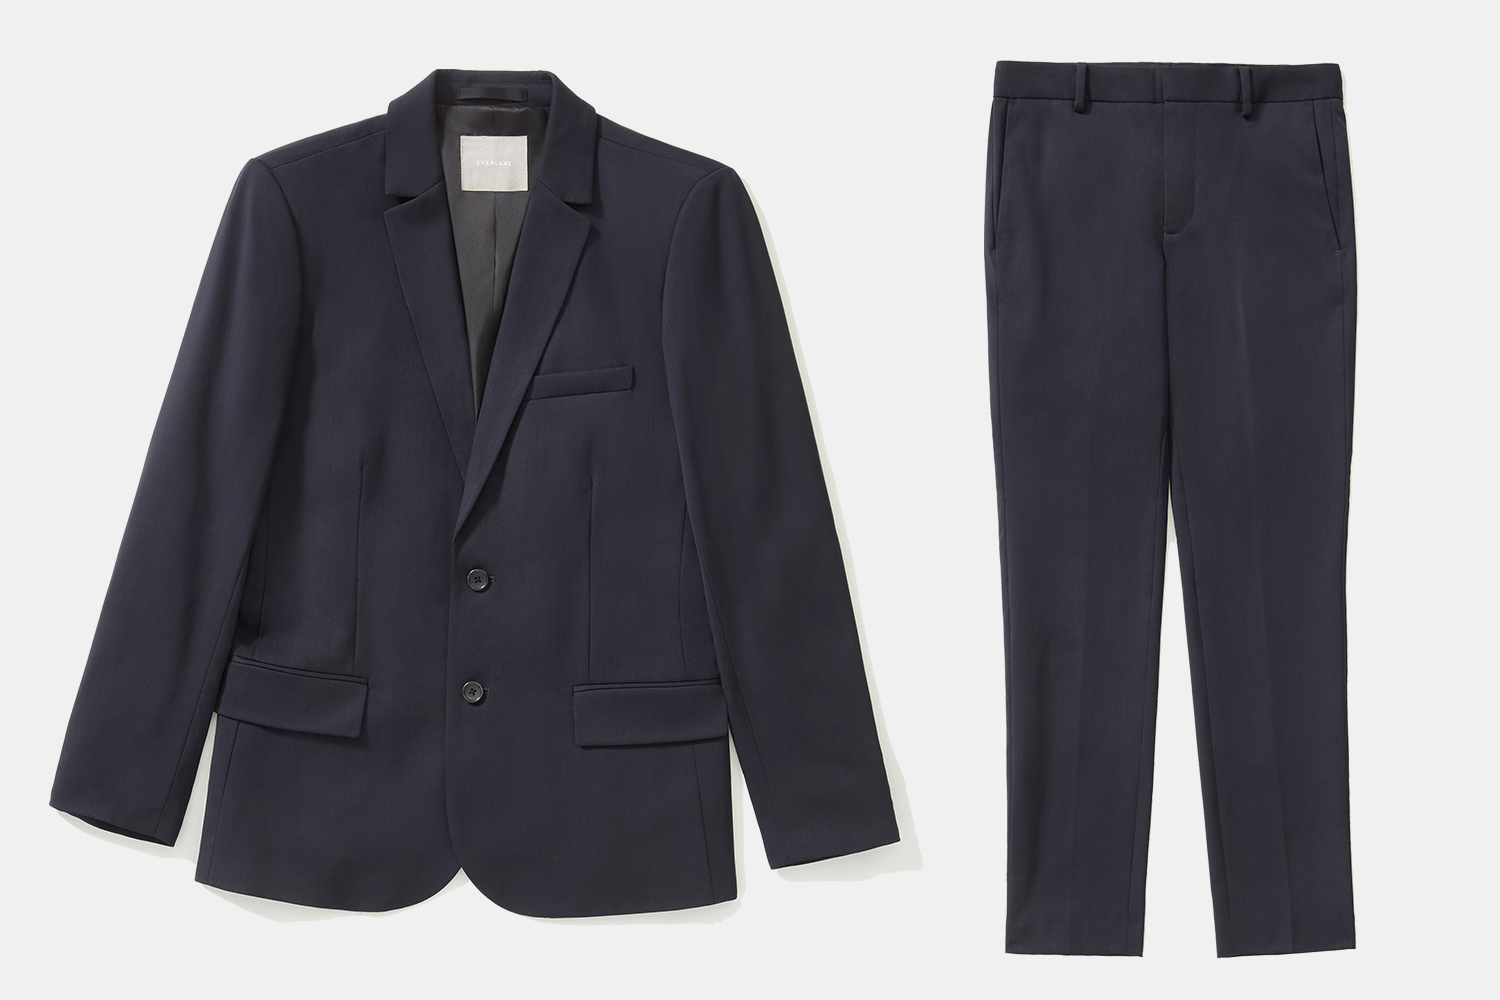 Everlane men's Italian wool suit